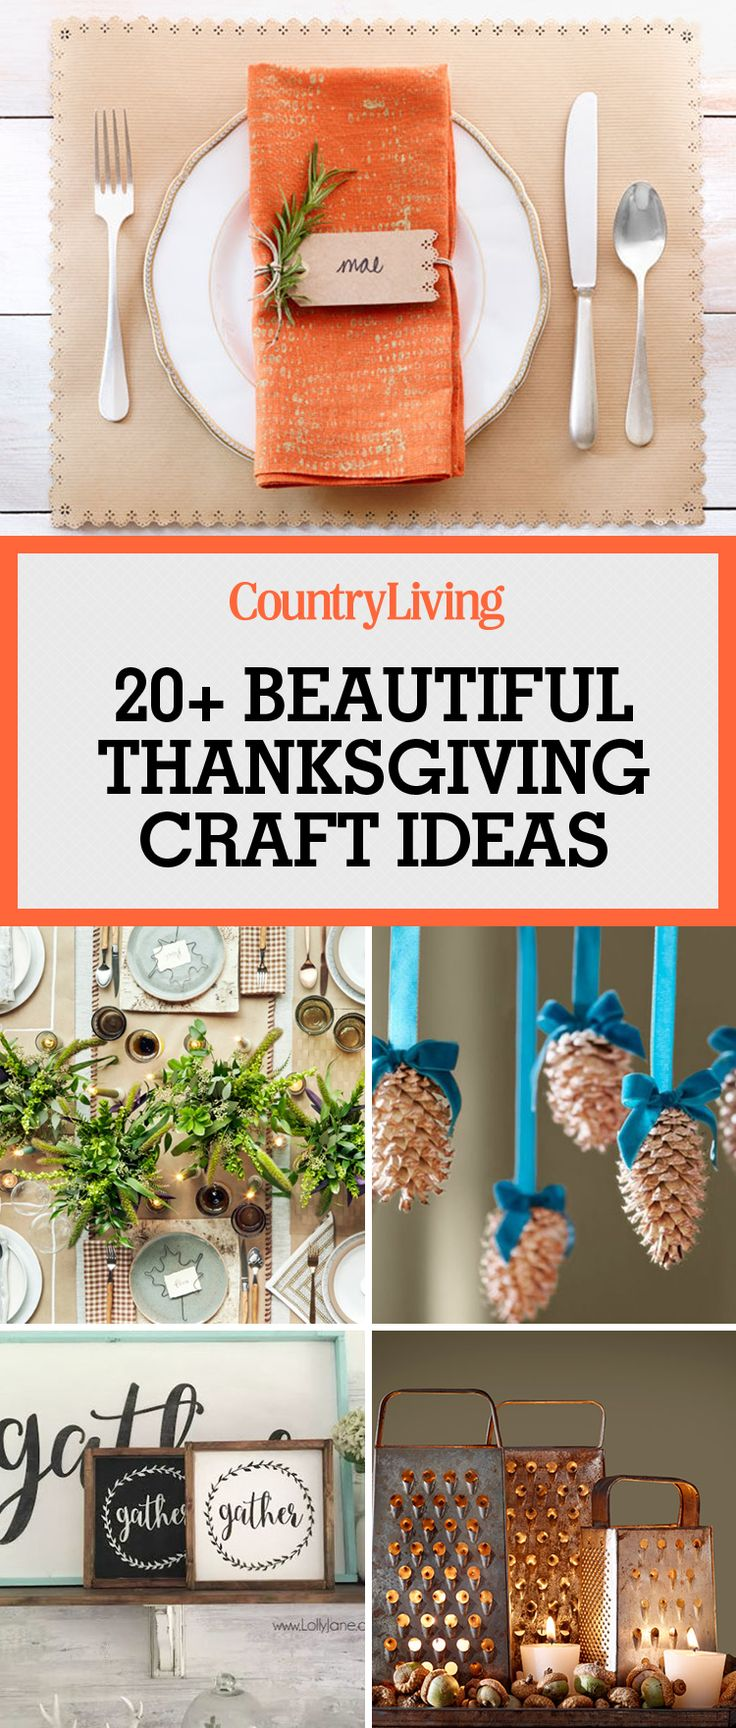 23 Easy And Beautiful Thanksgiving Craft Ideas